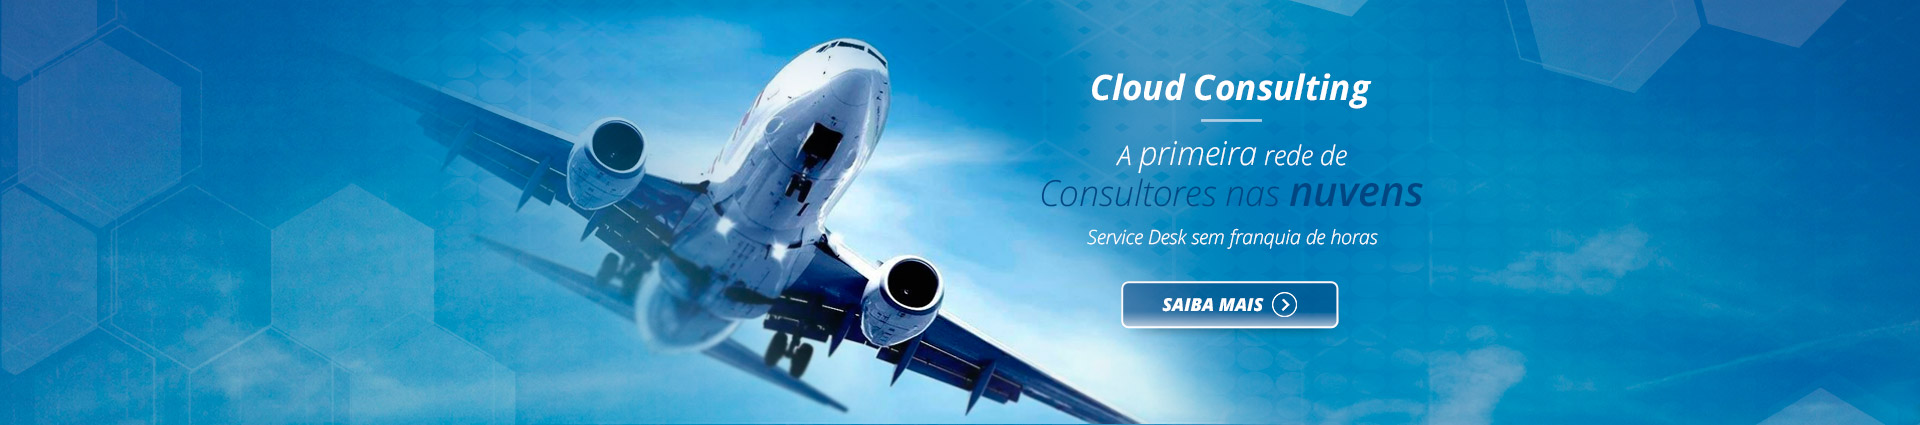 banner cloud consulting desk2